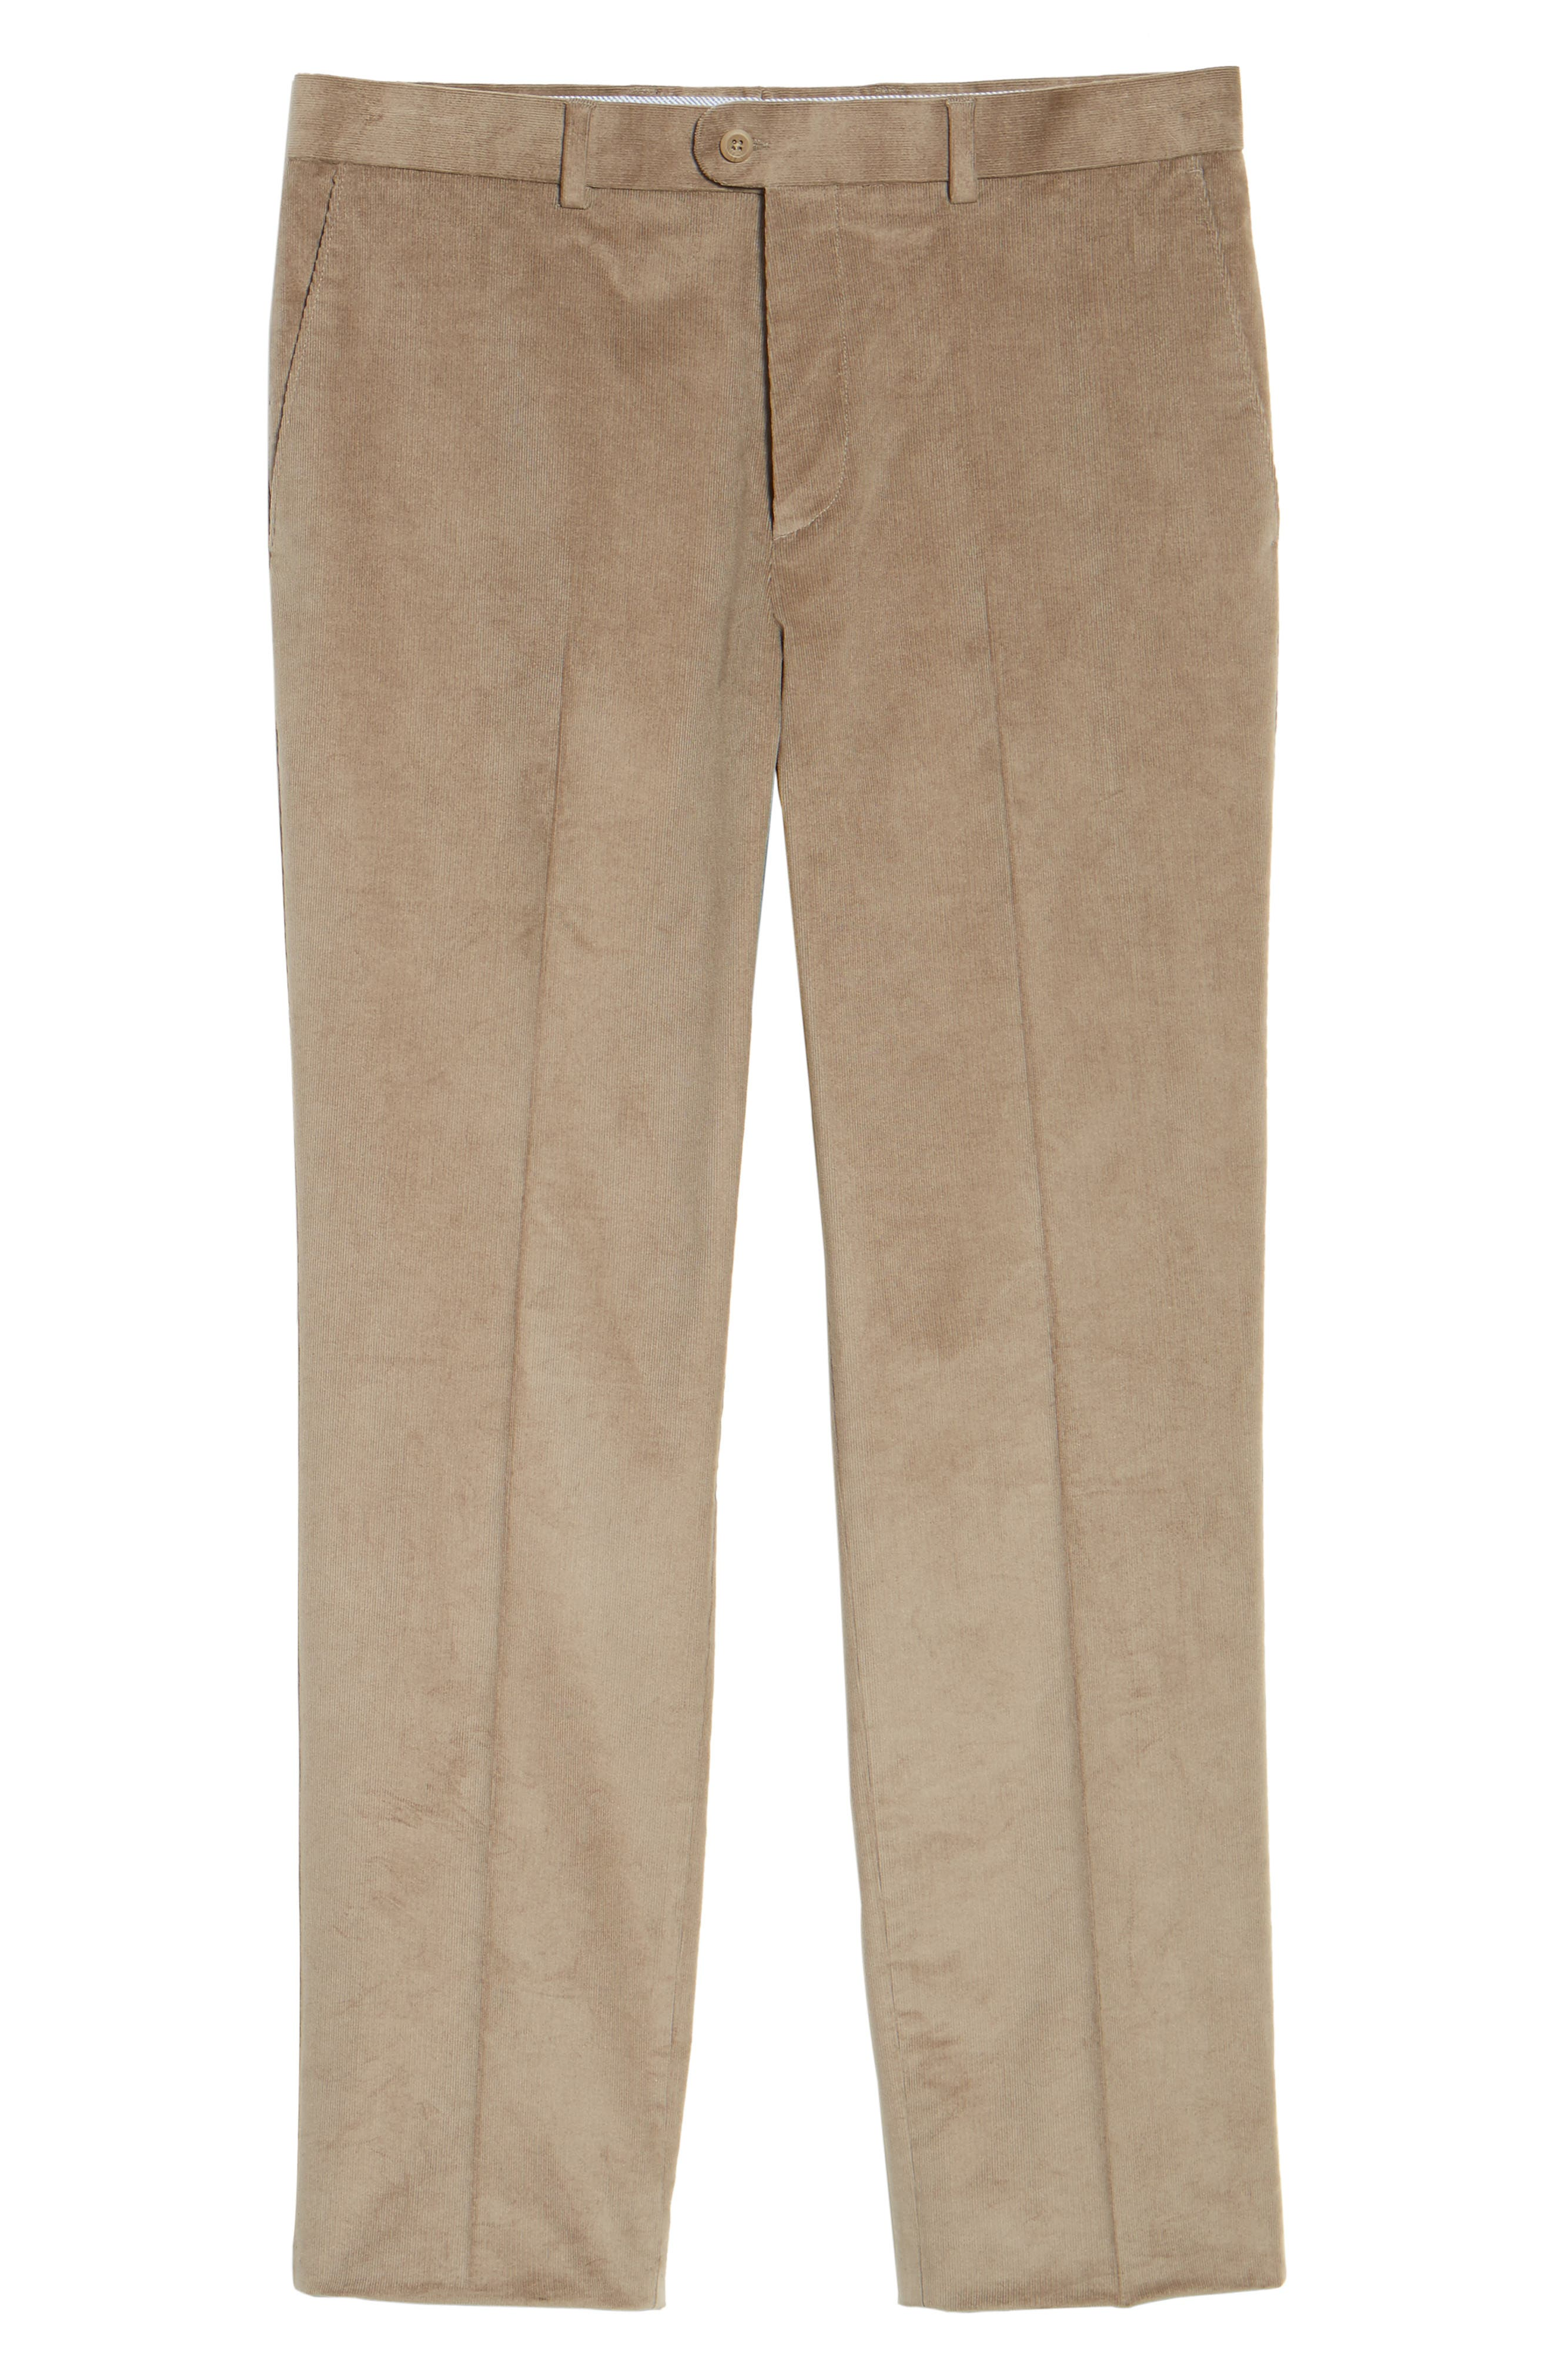 Corduroy Pants,                             Alternate thumbnail 6, color,                             Tan